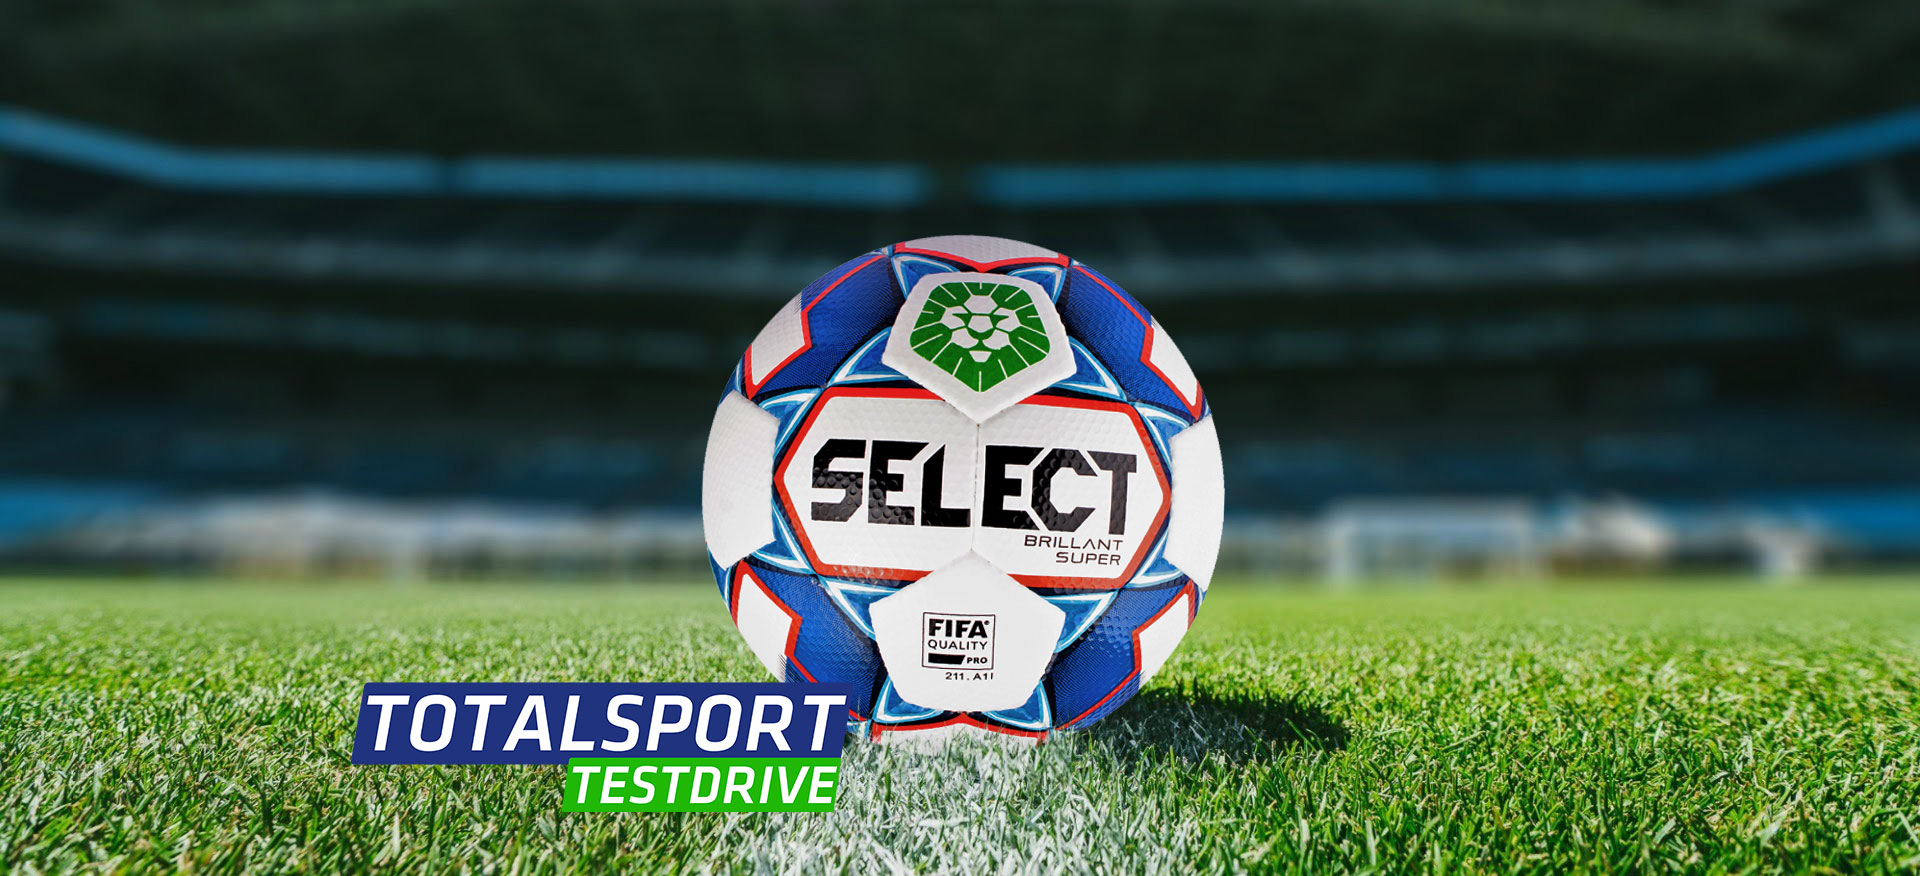 Select Brillant Super FIFA PFL белый